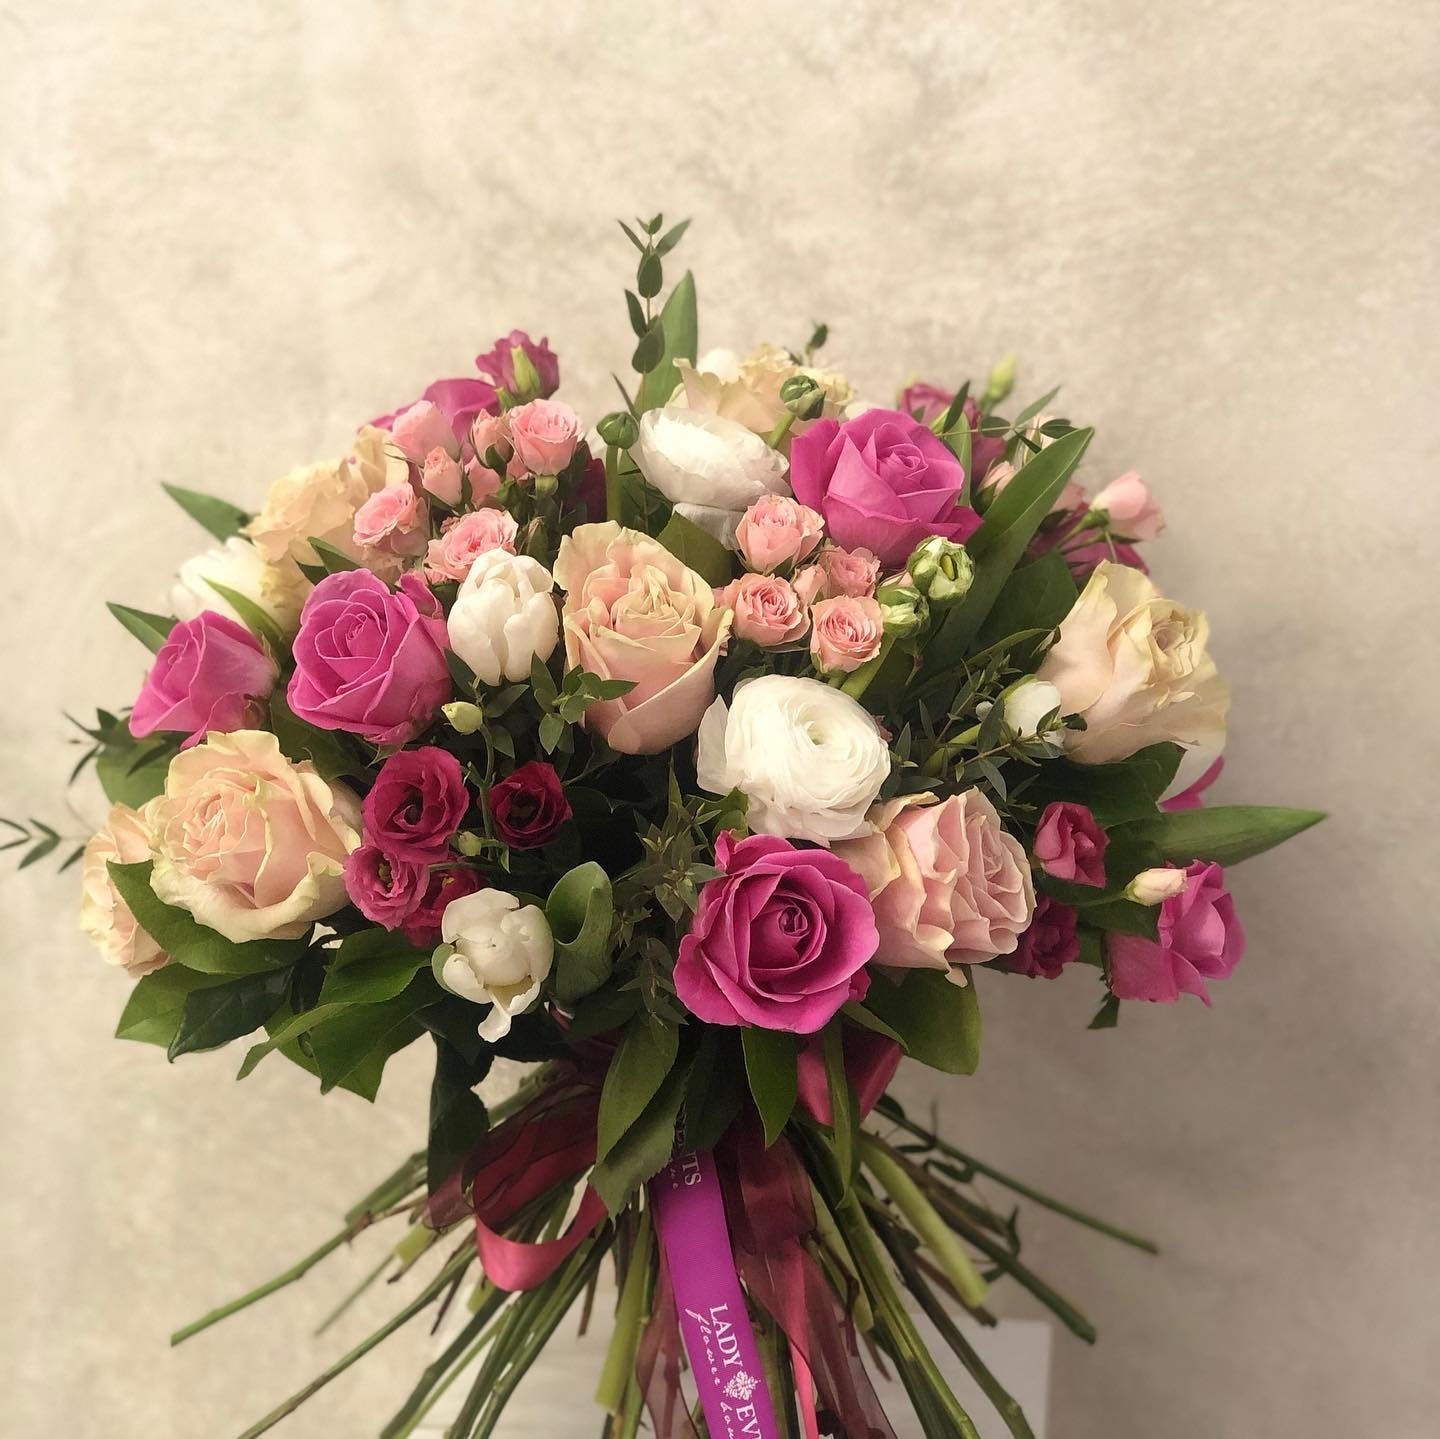 In Harmony: Roses and Lisiantus